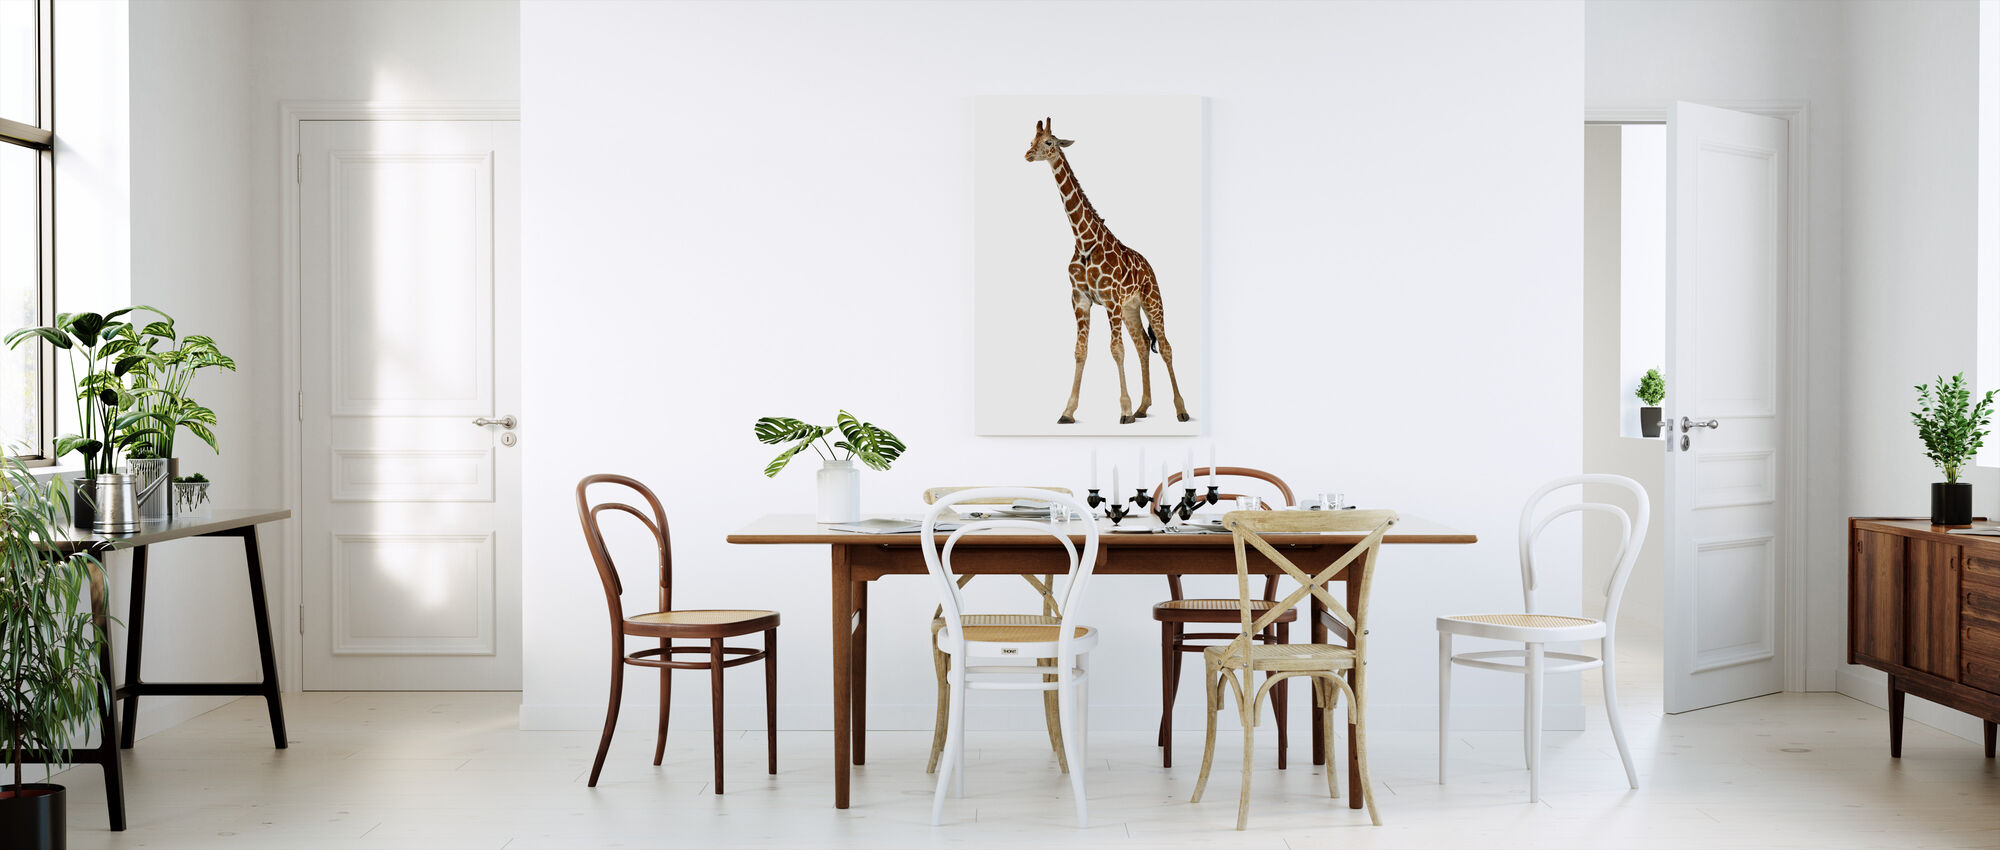 young giraffe impression sur toile en ligne pas cher photowall. Black Bedroom Furniture Sets. Home Design Ideas